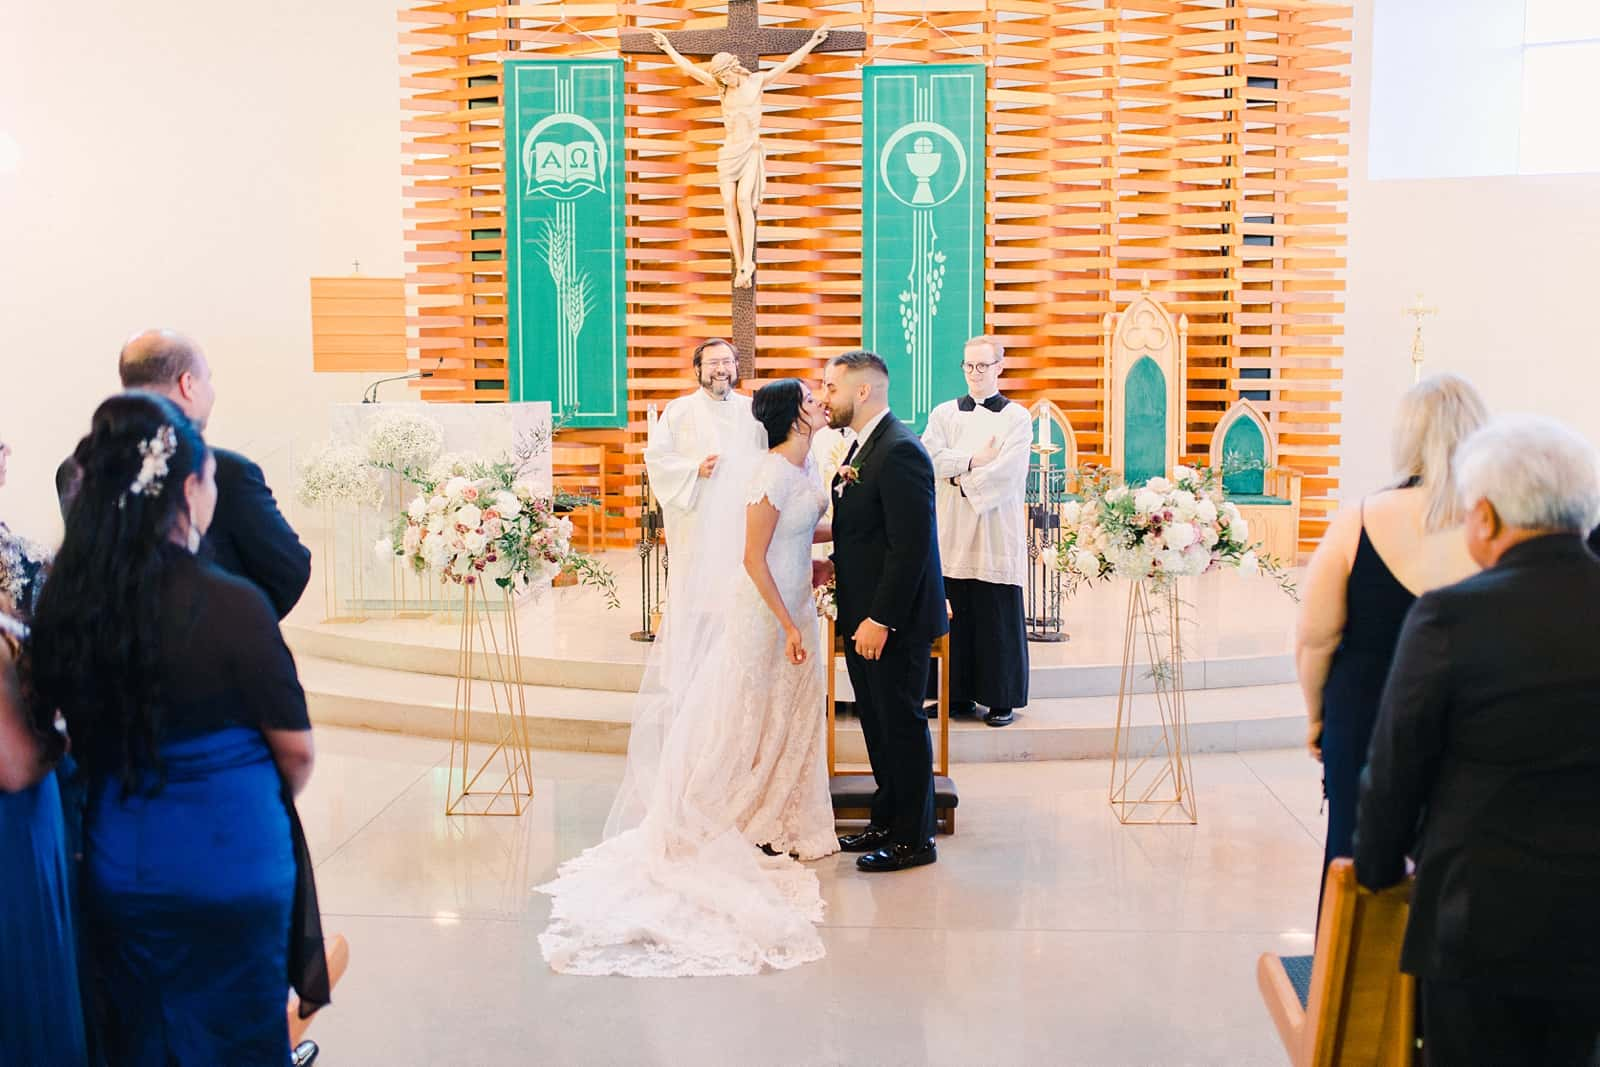 Bride and groom kiss during traditional Catholic ceremony